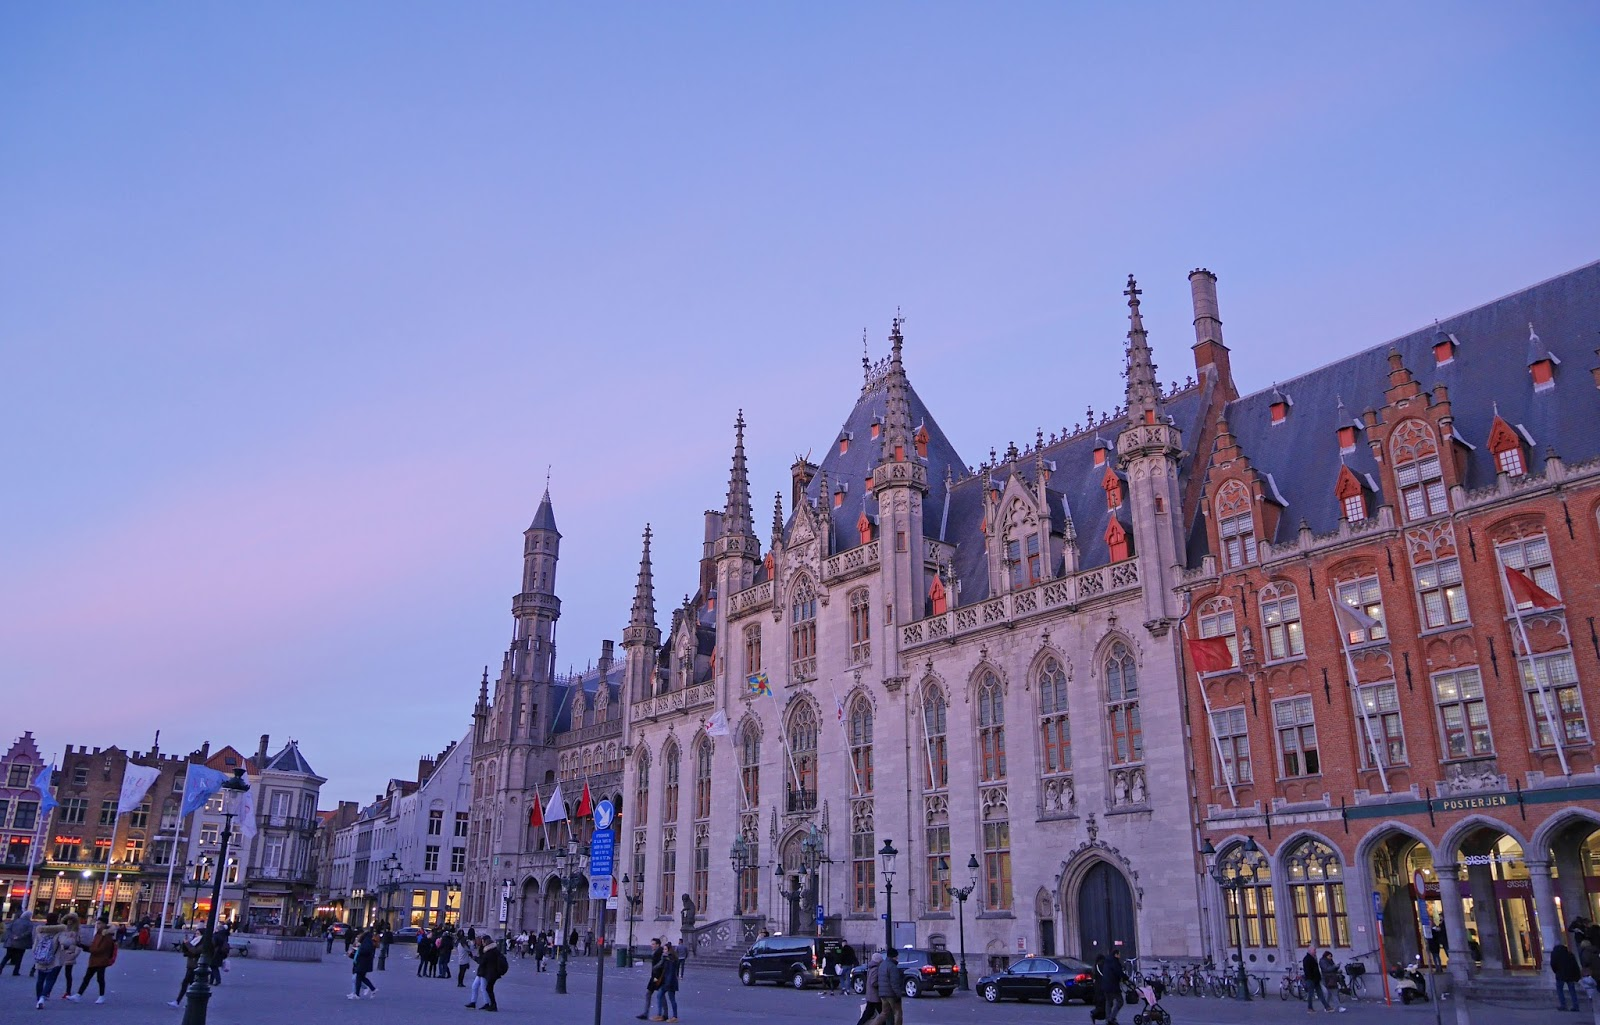 Bruges Market Square at sunset